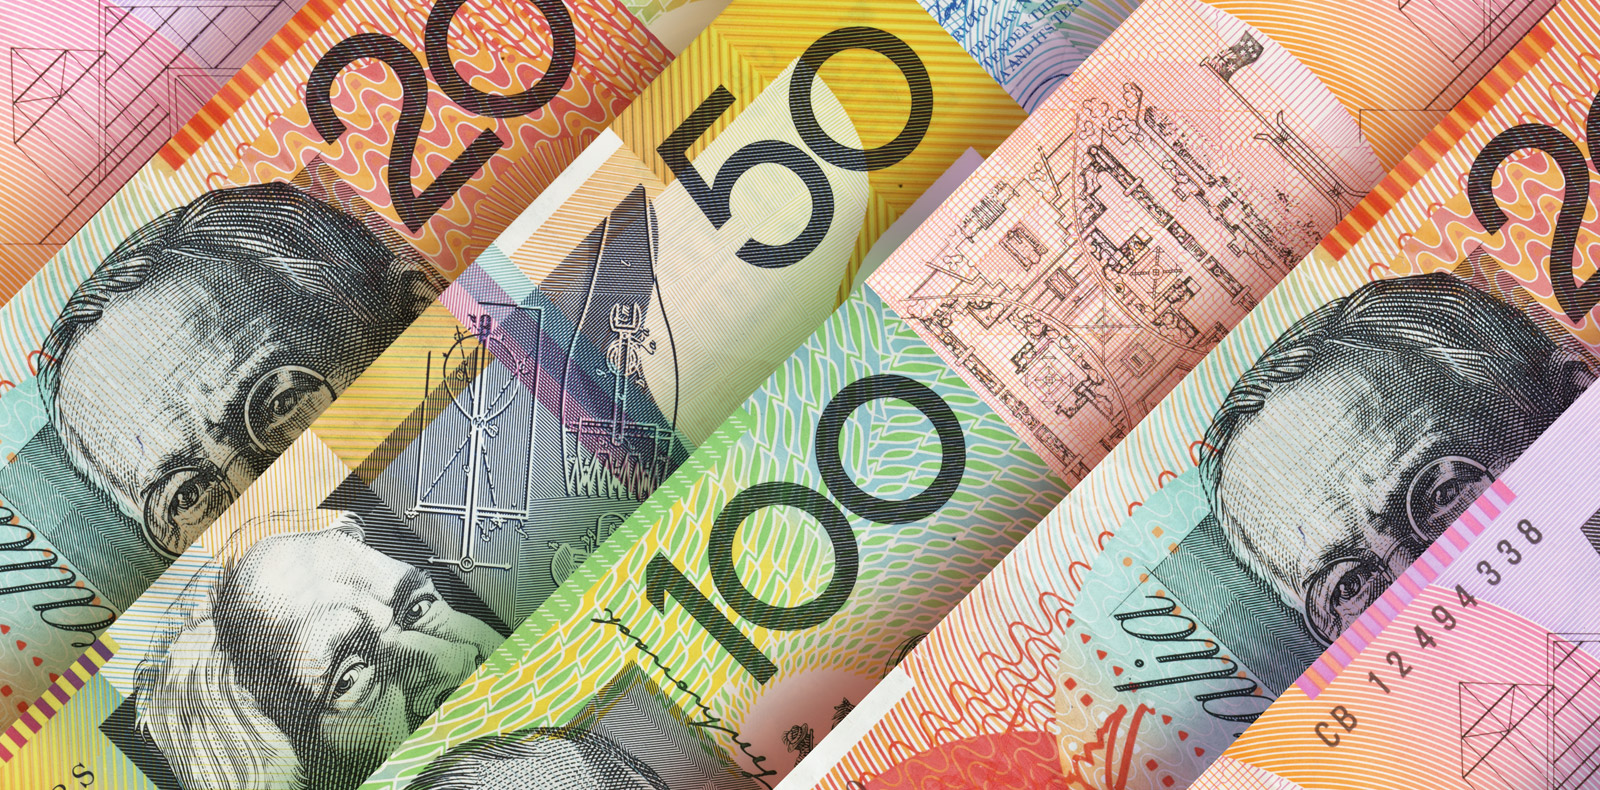 NAB raises Australian dollar exchange rate forecasts - Foreign Currency Direct